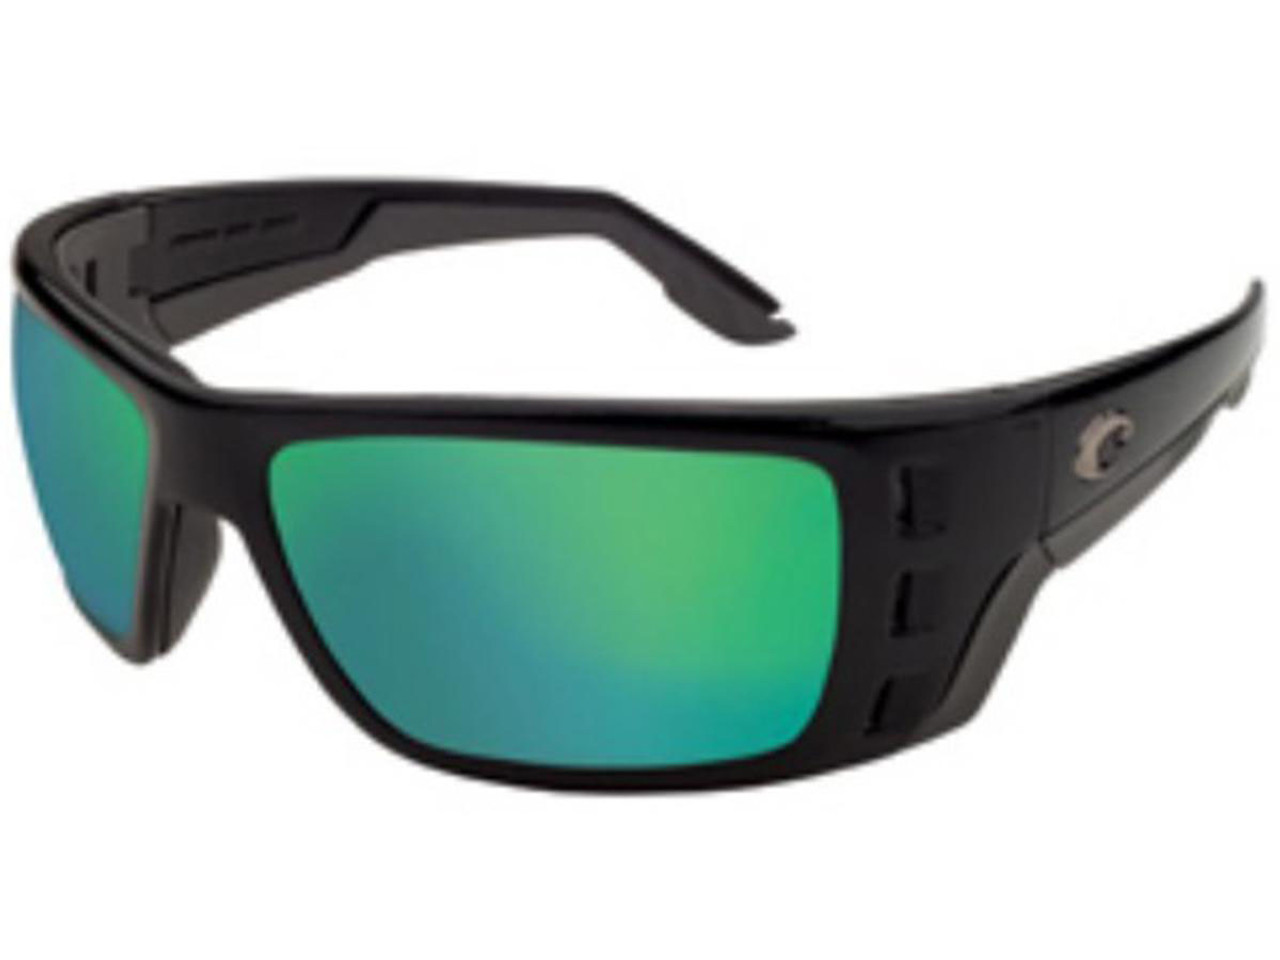 9abe848a1e Costa Del Mar - Permit Polarized Sunglasses (Color  Black   580g Green  Mirror) - Hero Outdoors